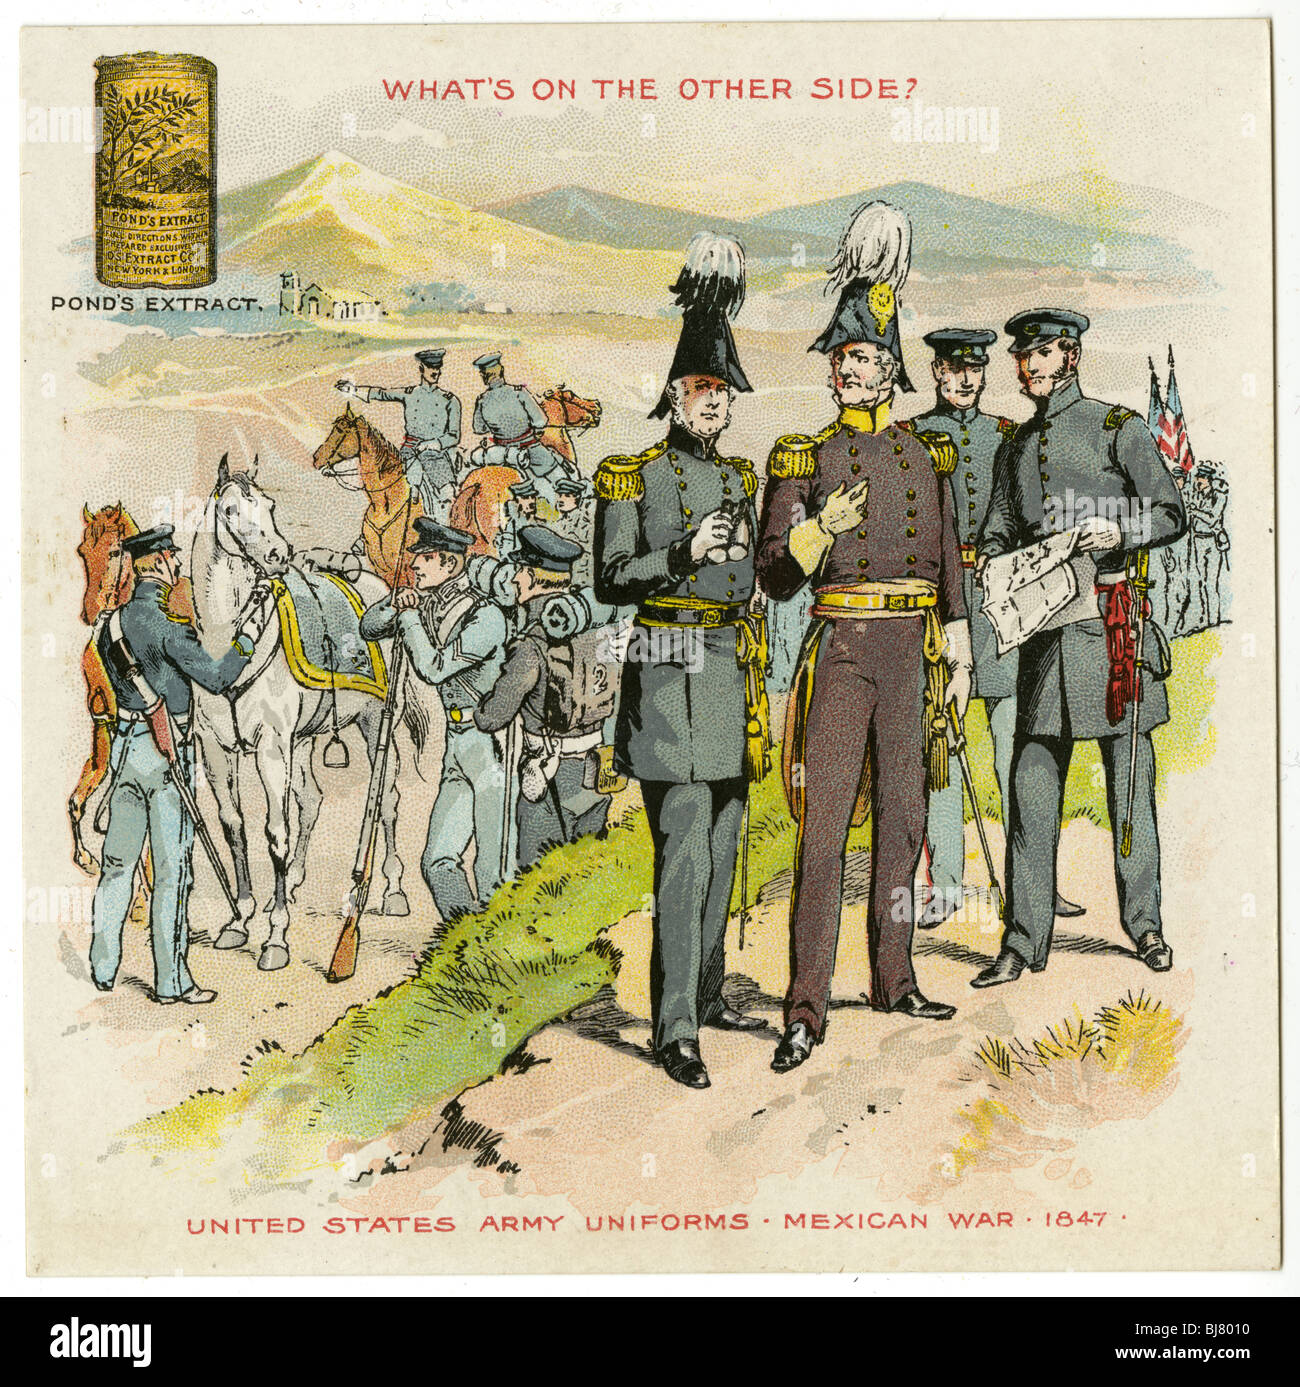 Circa 1890 Victorian trade card for Pond's Extract. United States Army Uniforms, Mexican War, 1847. - Stock Image